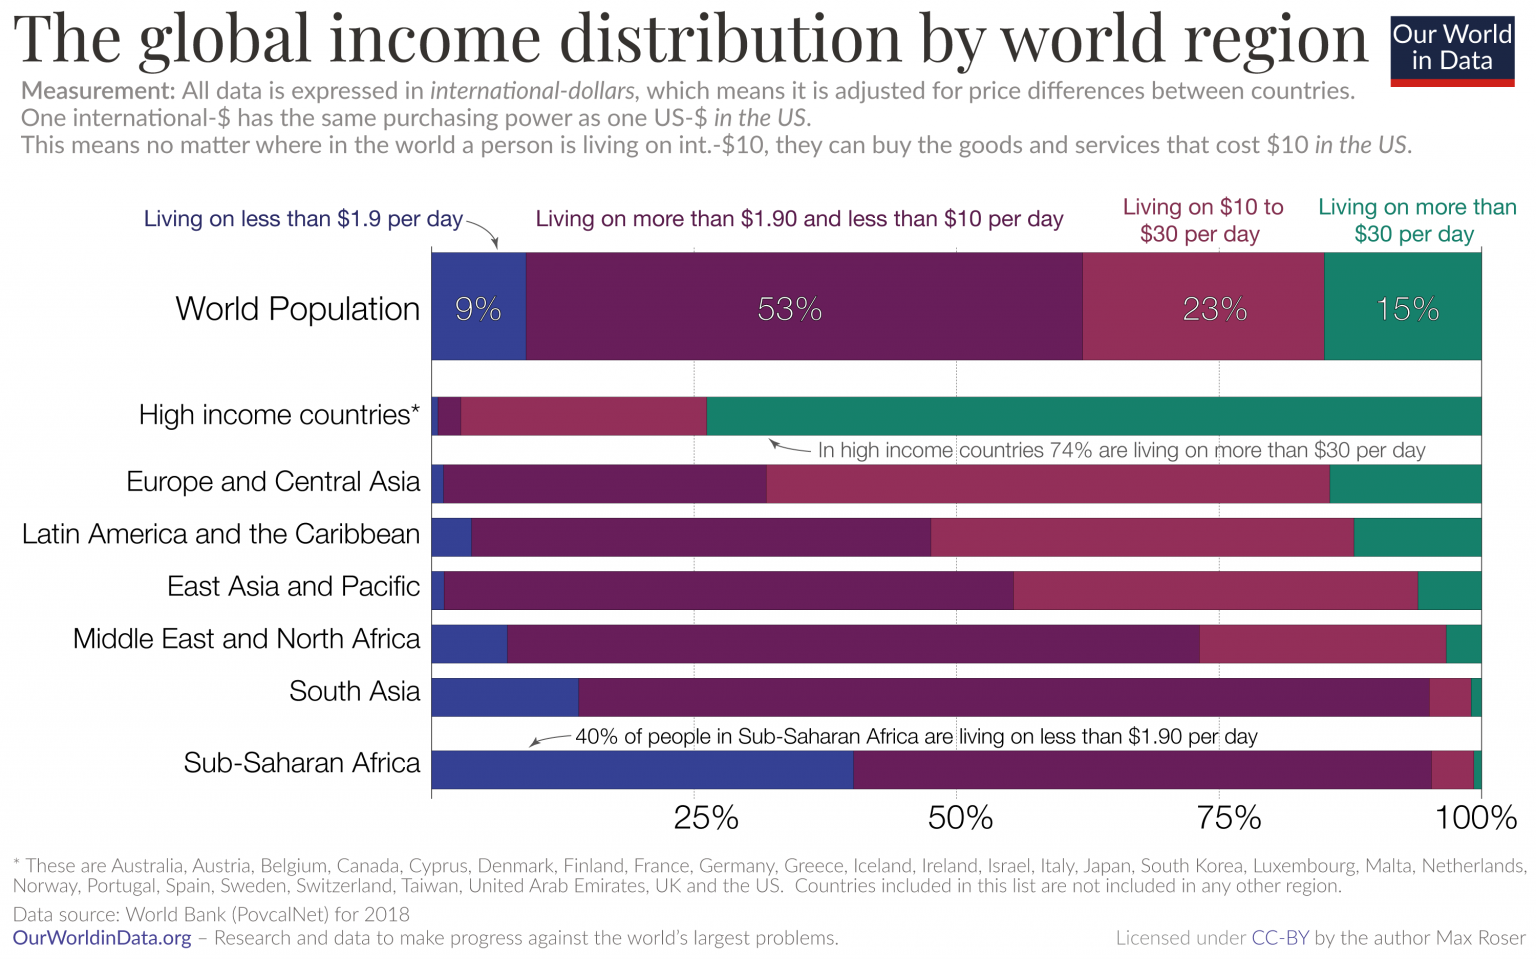 Global poverty in an unequal world: Who is considered poor in a rich country?